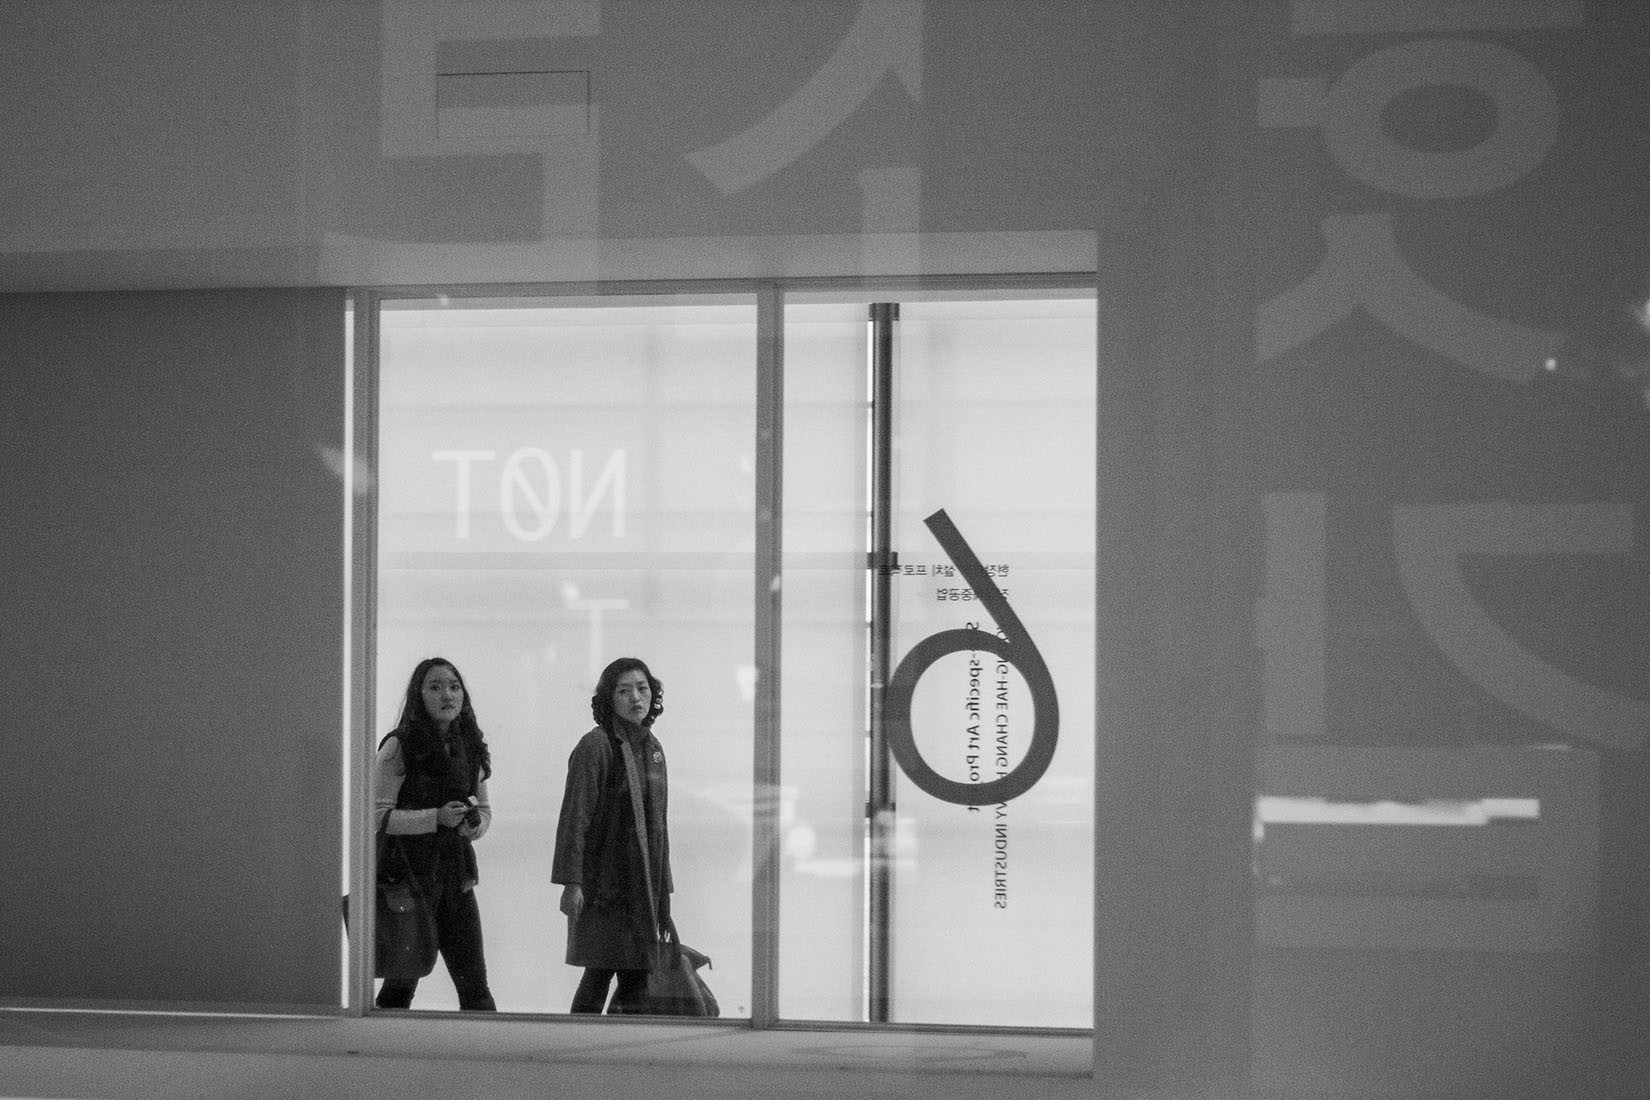 Young Women, typographical reflections projection of characters, National Museum of Modern and Contemporary Art, Seoul, Young-Hae Chang Heavy Industries